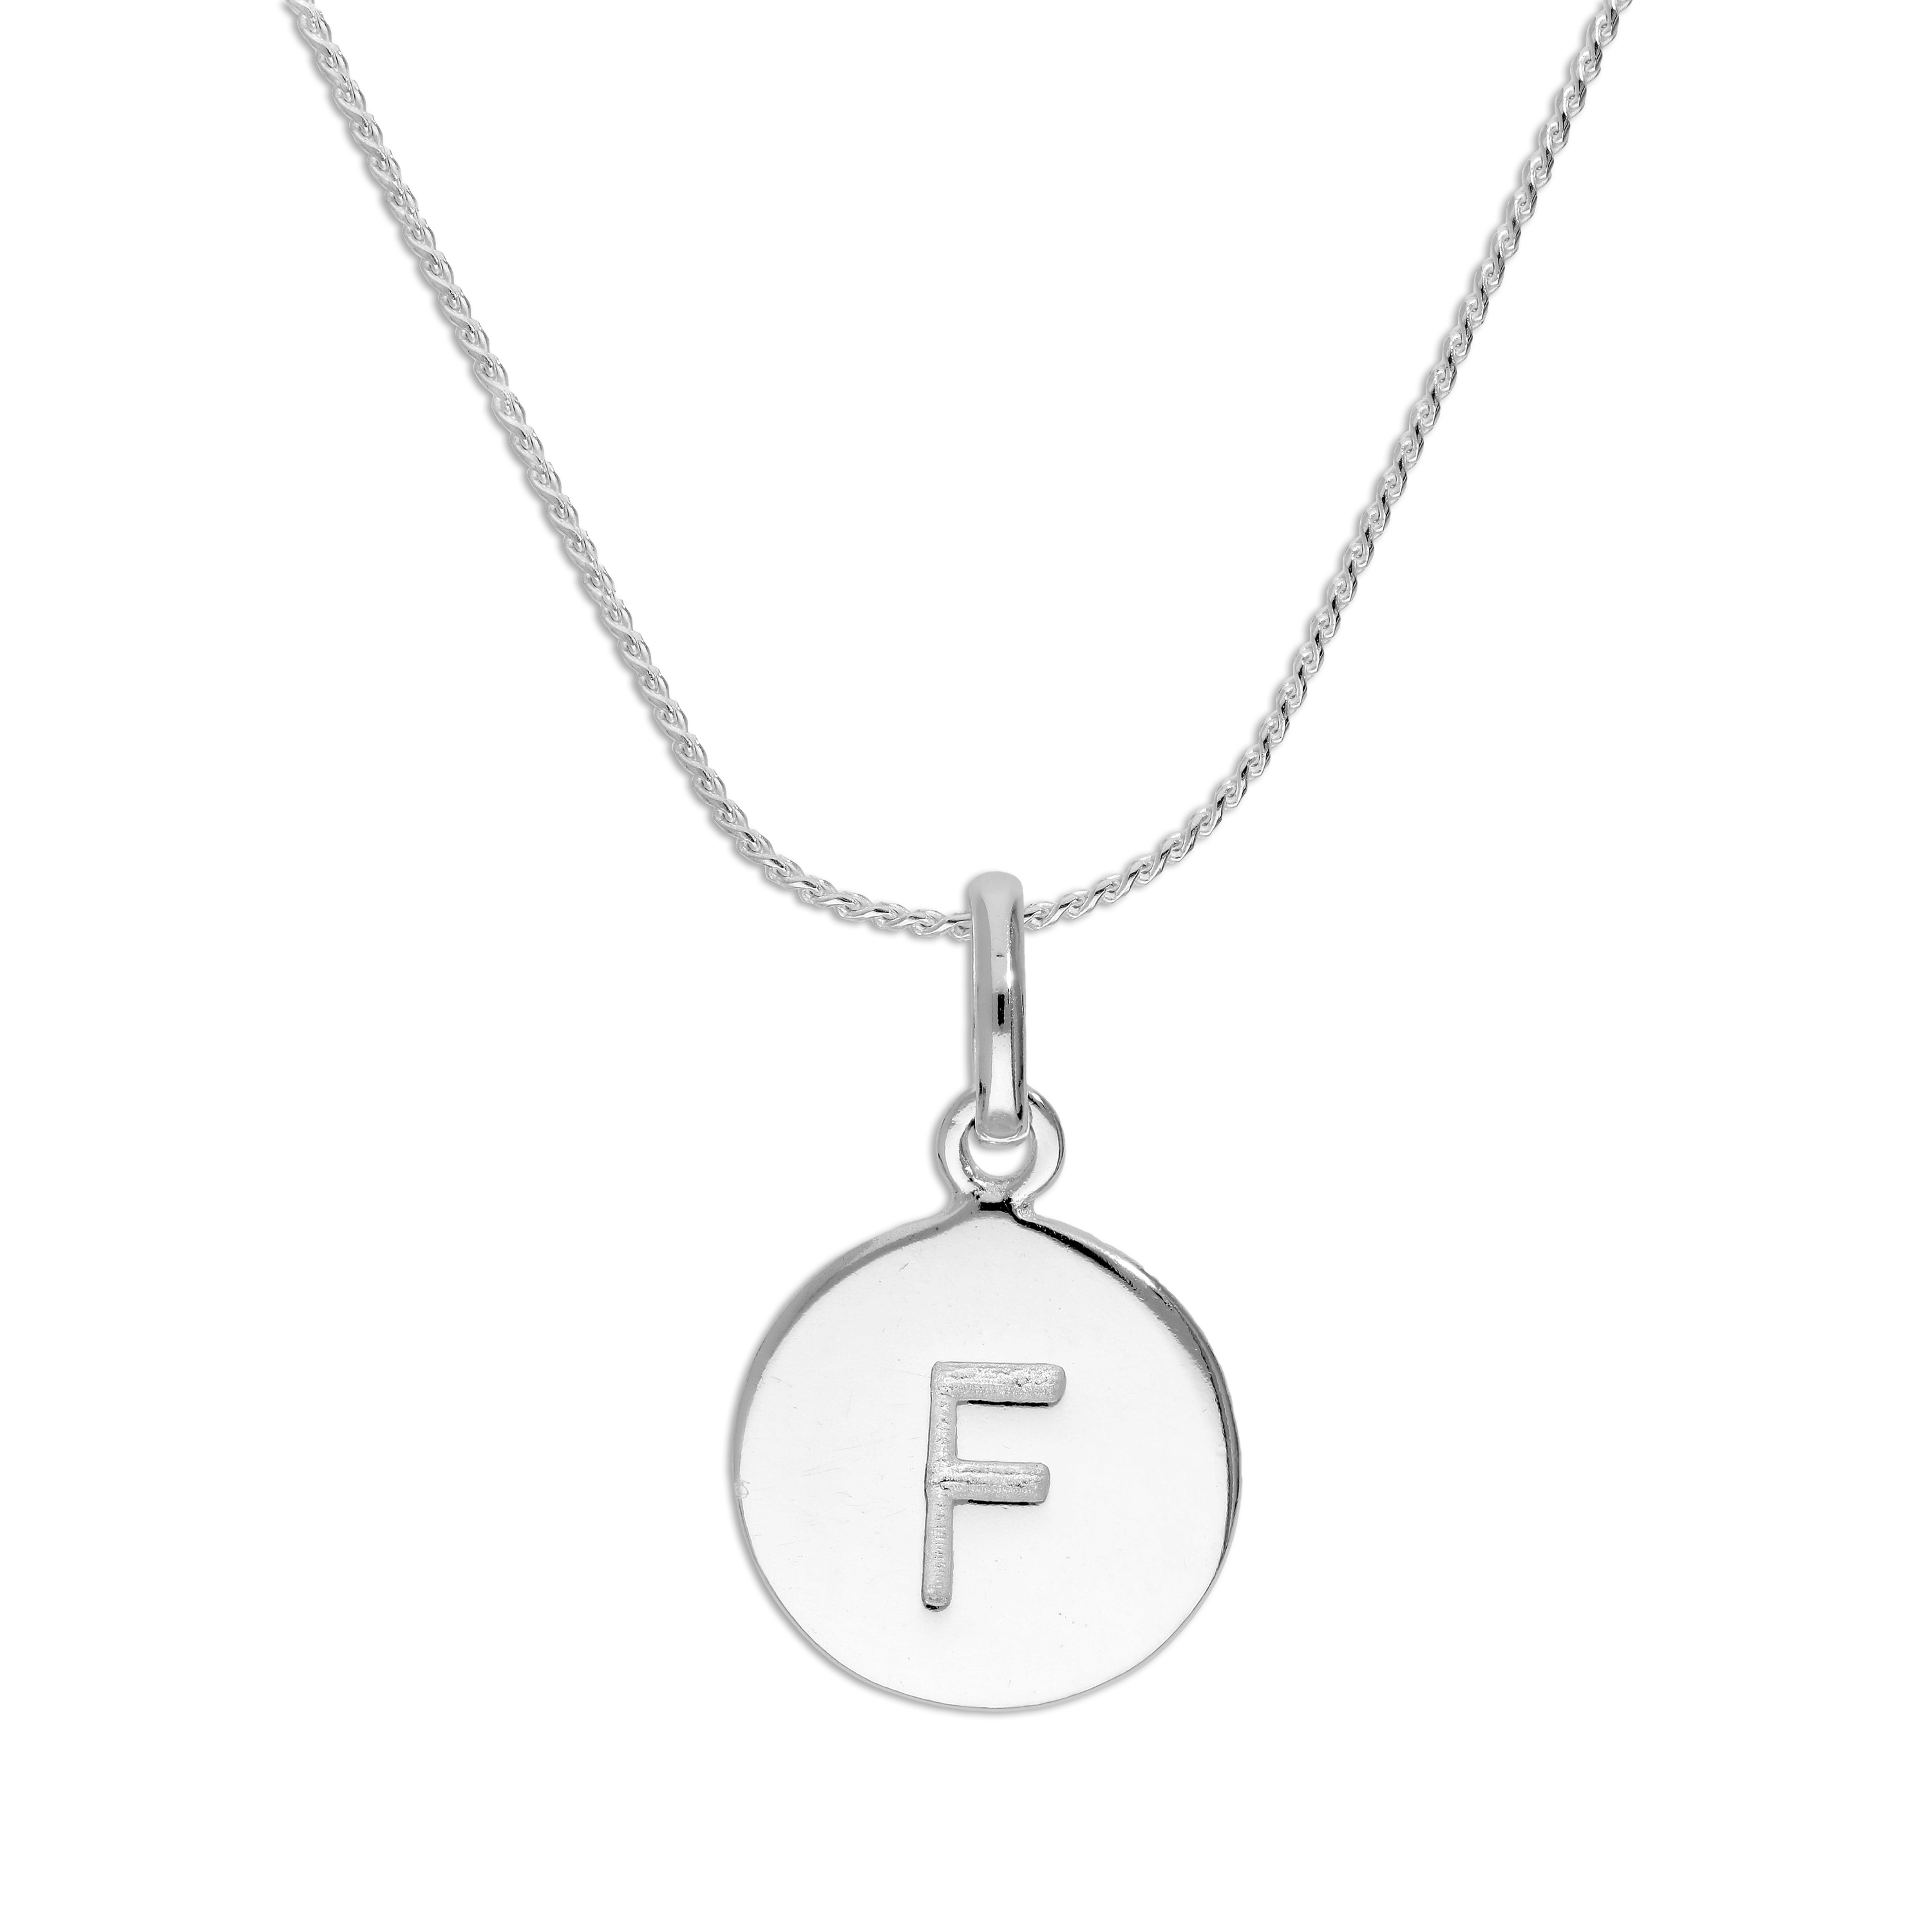 An image of Sterling Silver Initial Letter F Necklace 16 Inches Blue